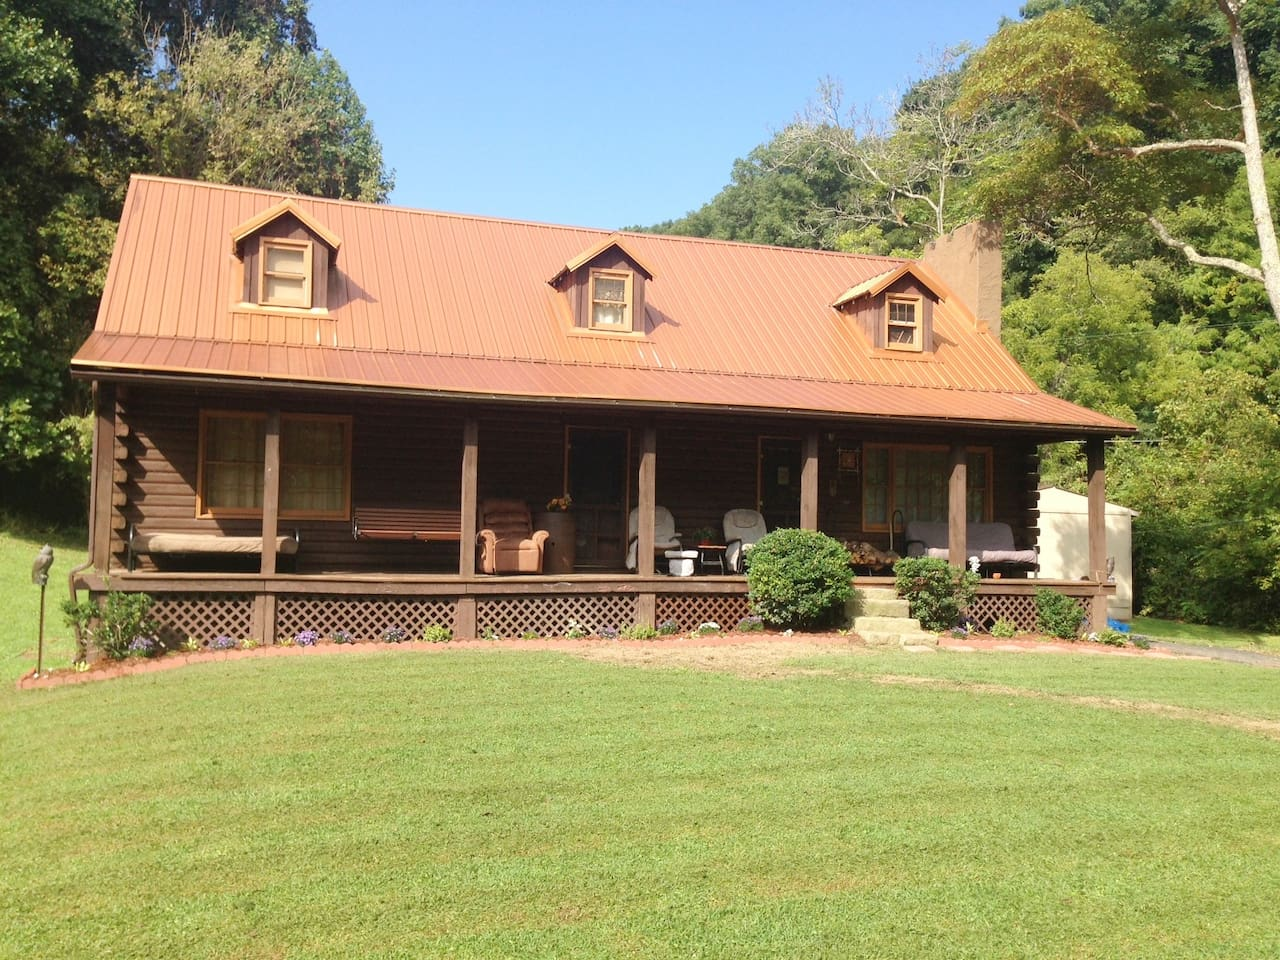 Log Cabin in the Field - Lower Level  Full Kitchnen - Dining /65 Inch Flat Screen/Dining Table/ Desk/ w. Computer/Deco Fireplace, Private Parking/15 Foot Leather/Flower Gardens/Deer/ Sectional  You are renting the lower half back side of the house